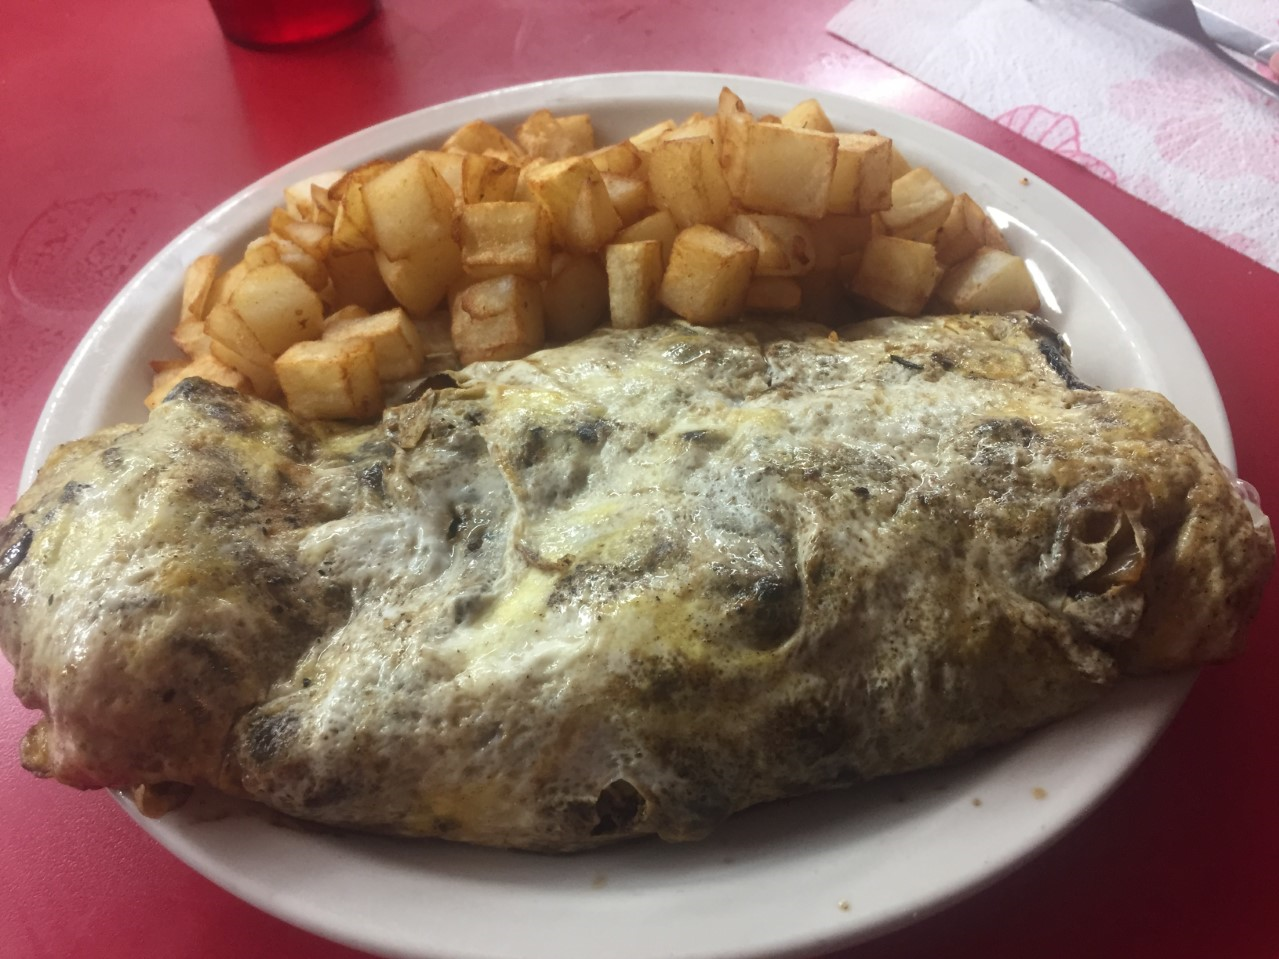 Inskip Grill's Magnolia Melt omelet is made with ribeye steak, mushrooms, onions, green peppers and a choice of cheese, and comes with a side of home fries.